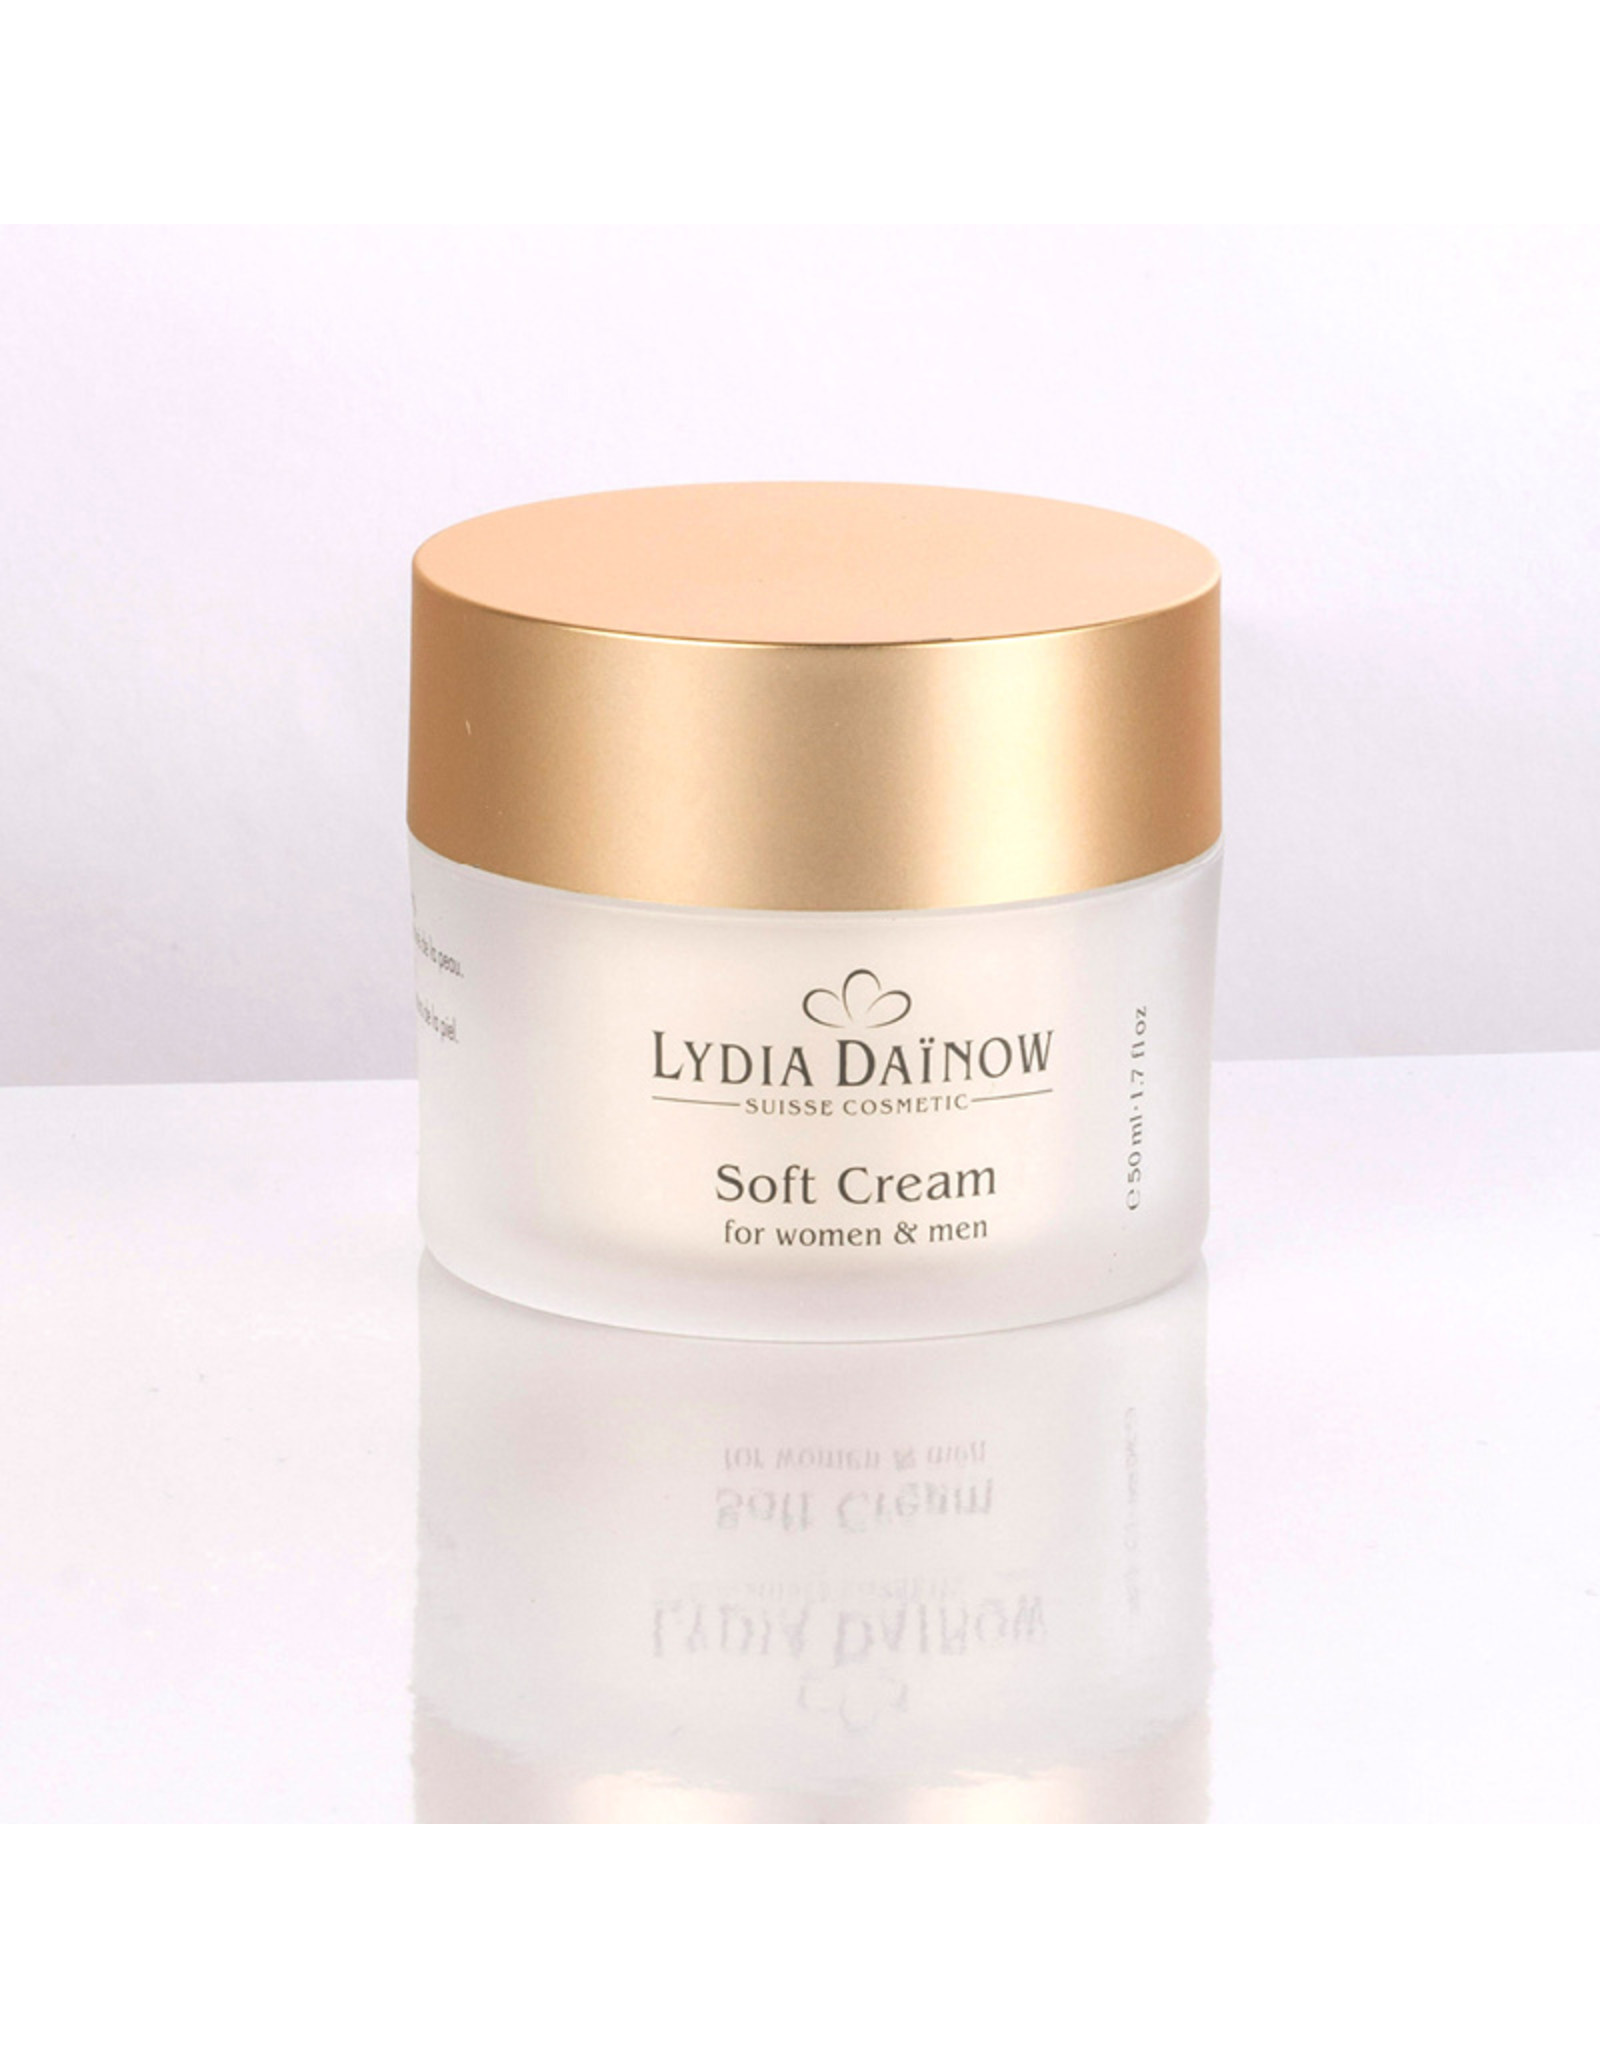 Lydïa Dainow Evolution Soft Cream - Nachtpflege